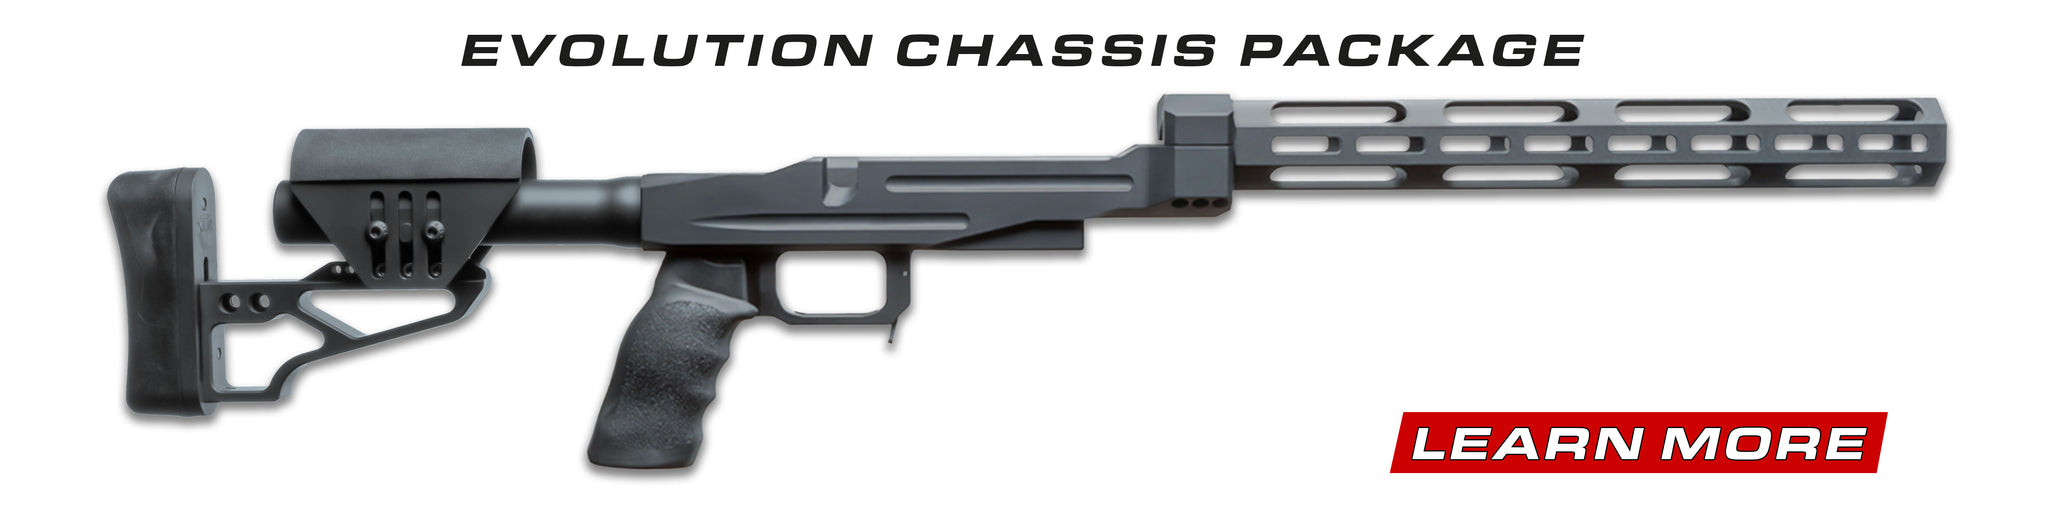 XLR Industries Evolution Chassis